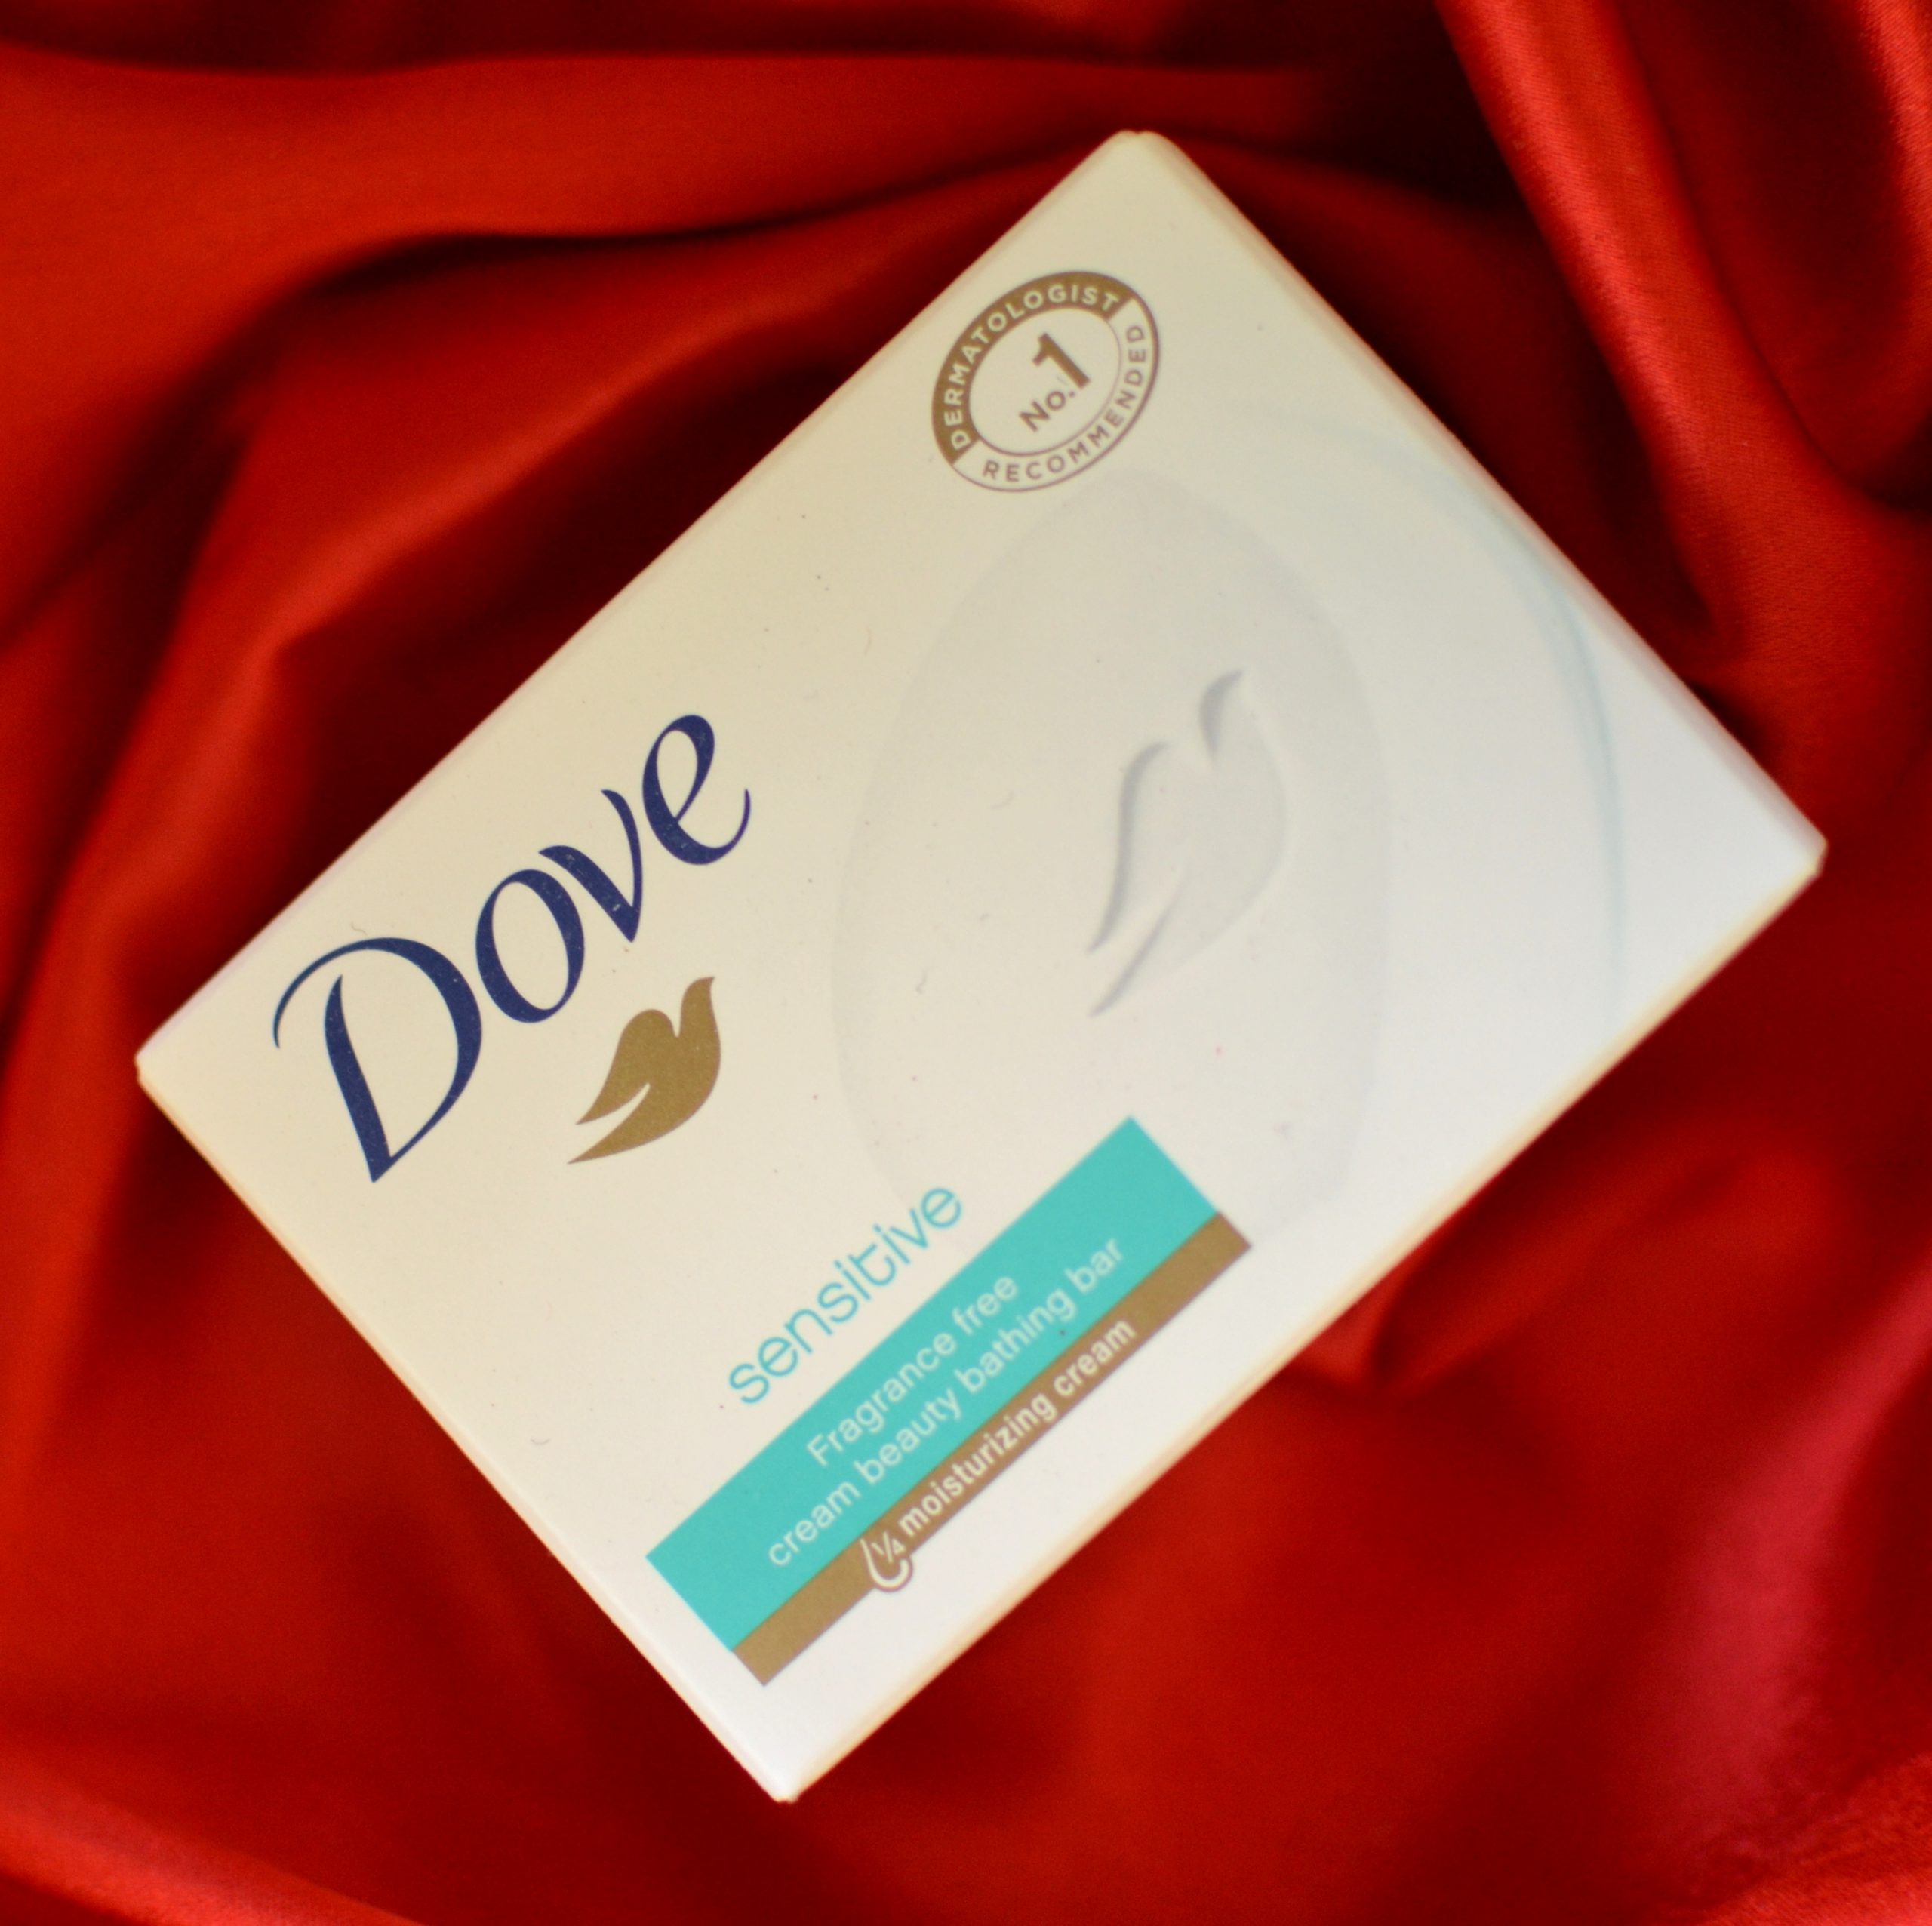 Dove Sensitive Cleansing Bar Review - Presented By P